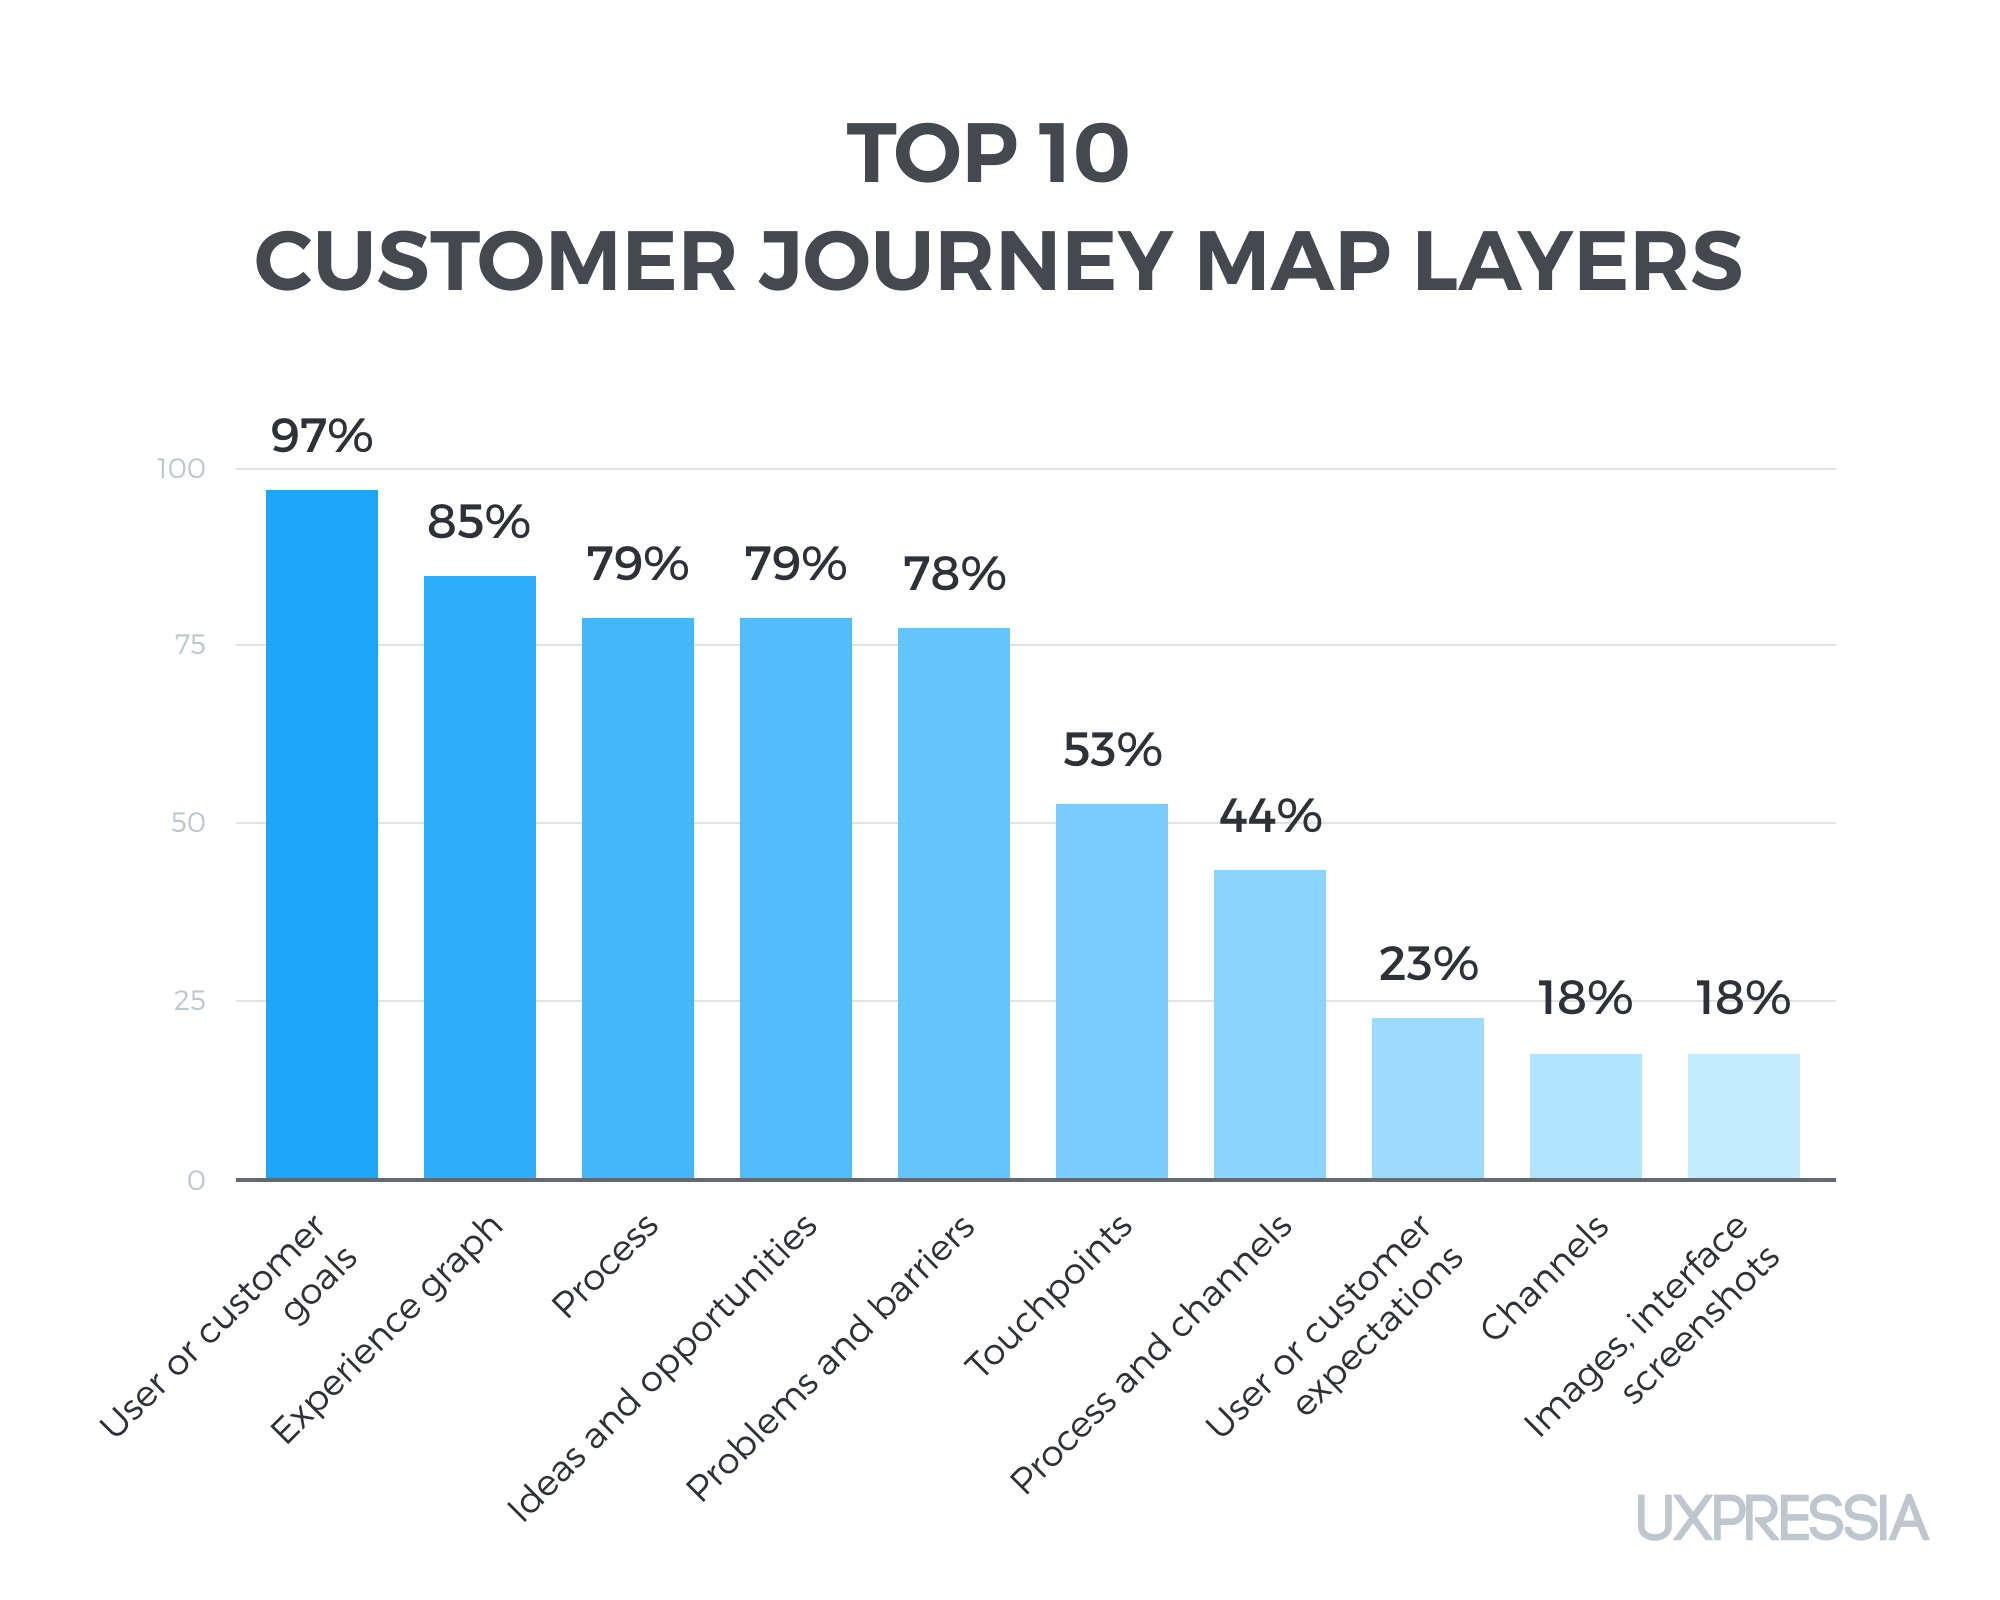 Statistics on top 10 customer journey map layers